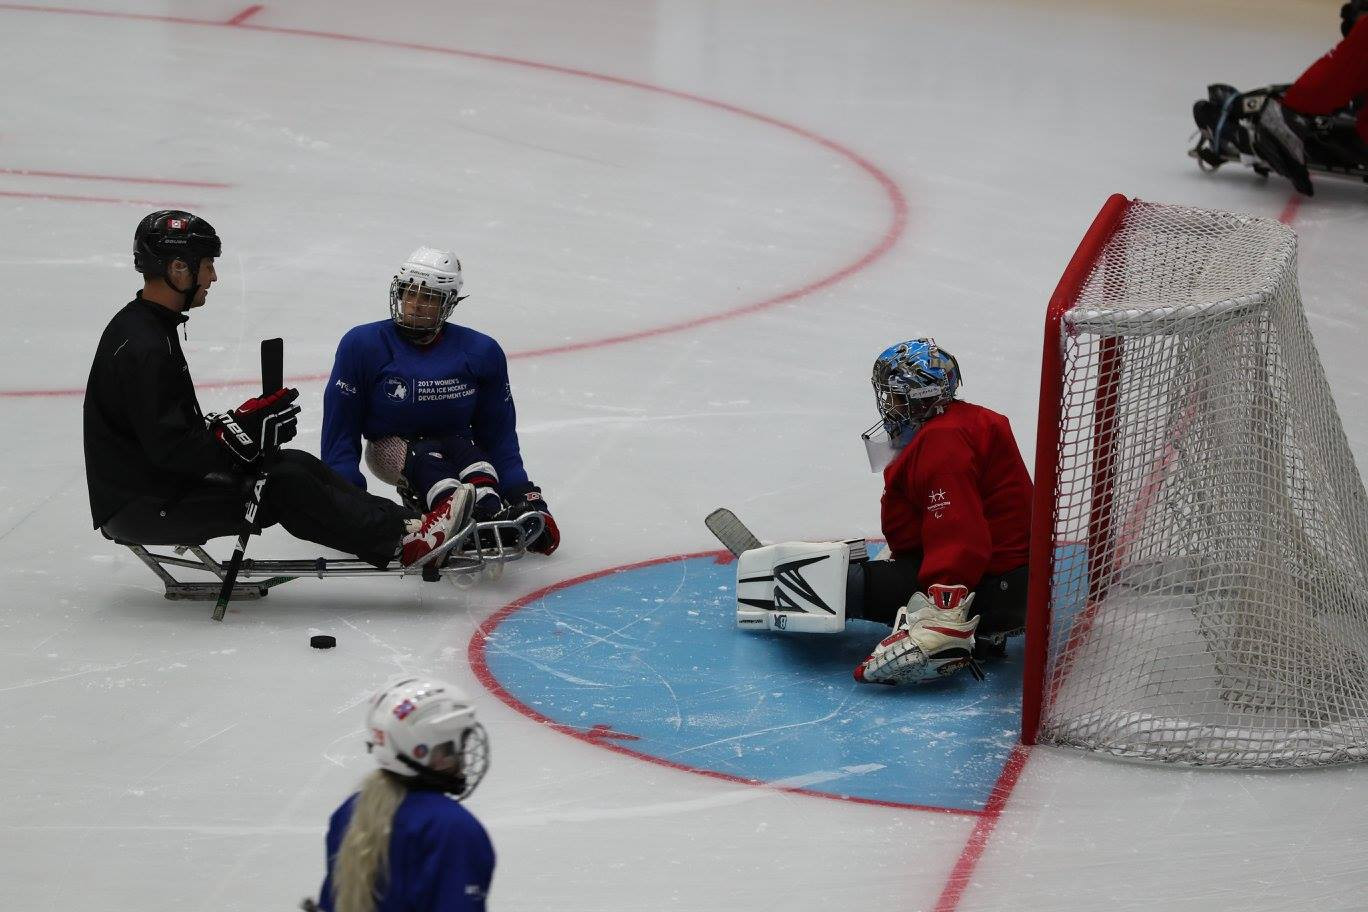 South Korea stages Paralympic Winter sports development workshop